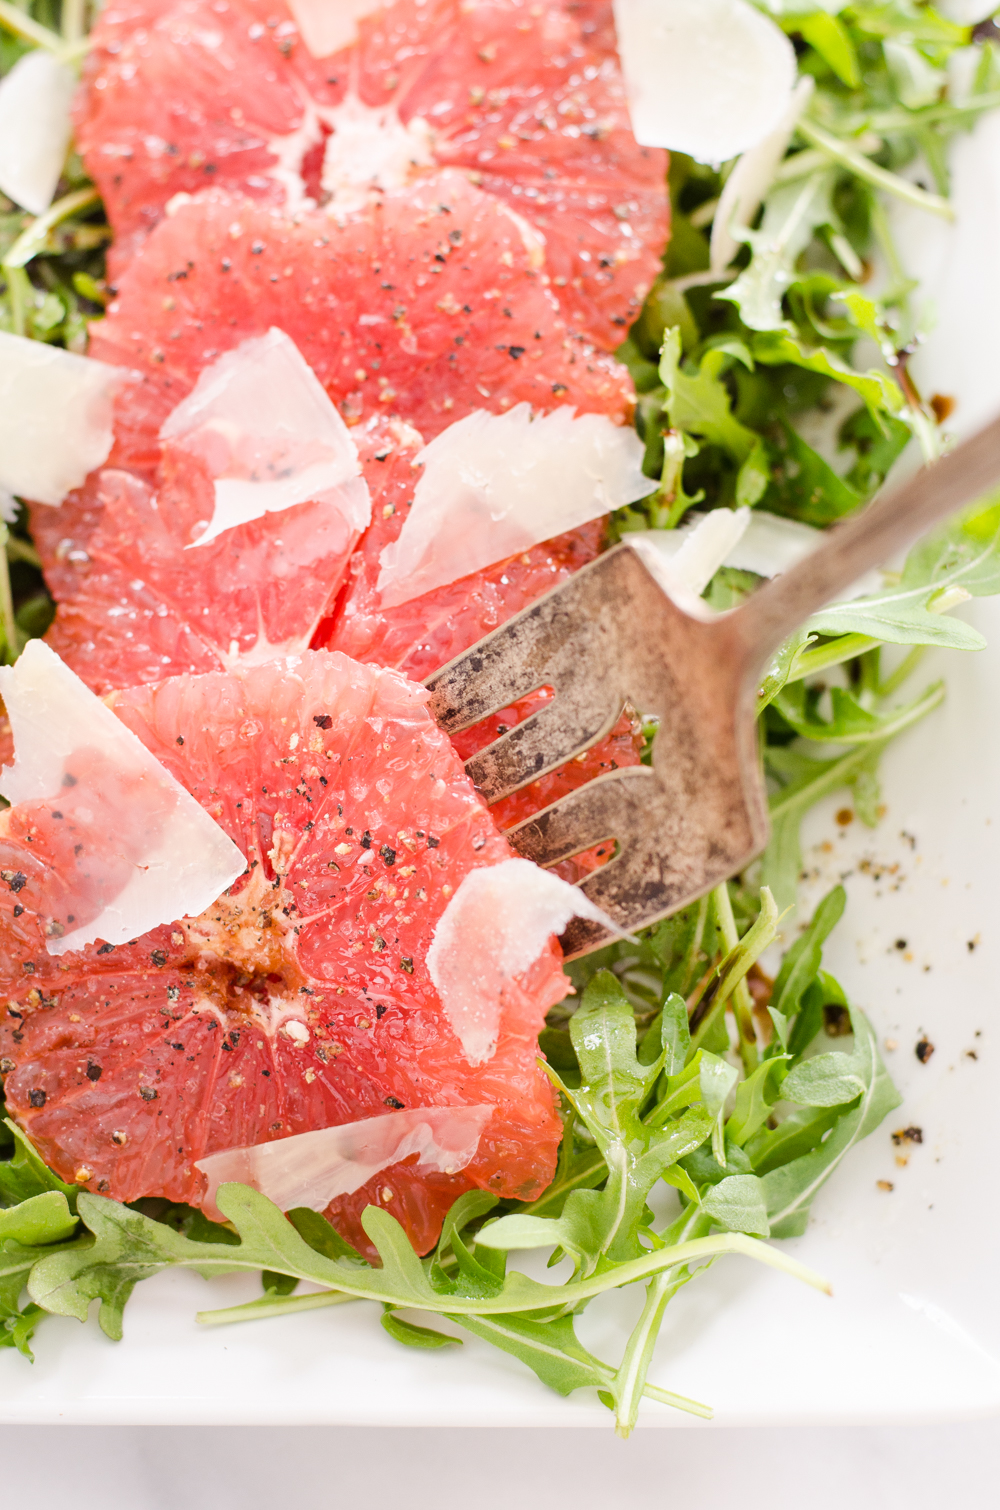 Grapefruit and Arugula Salad